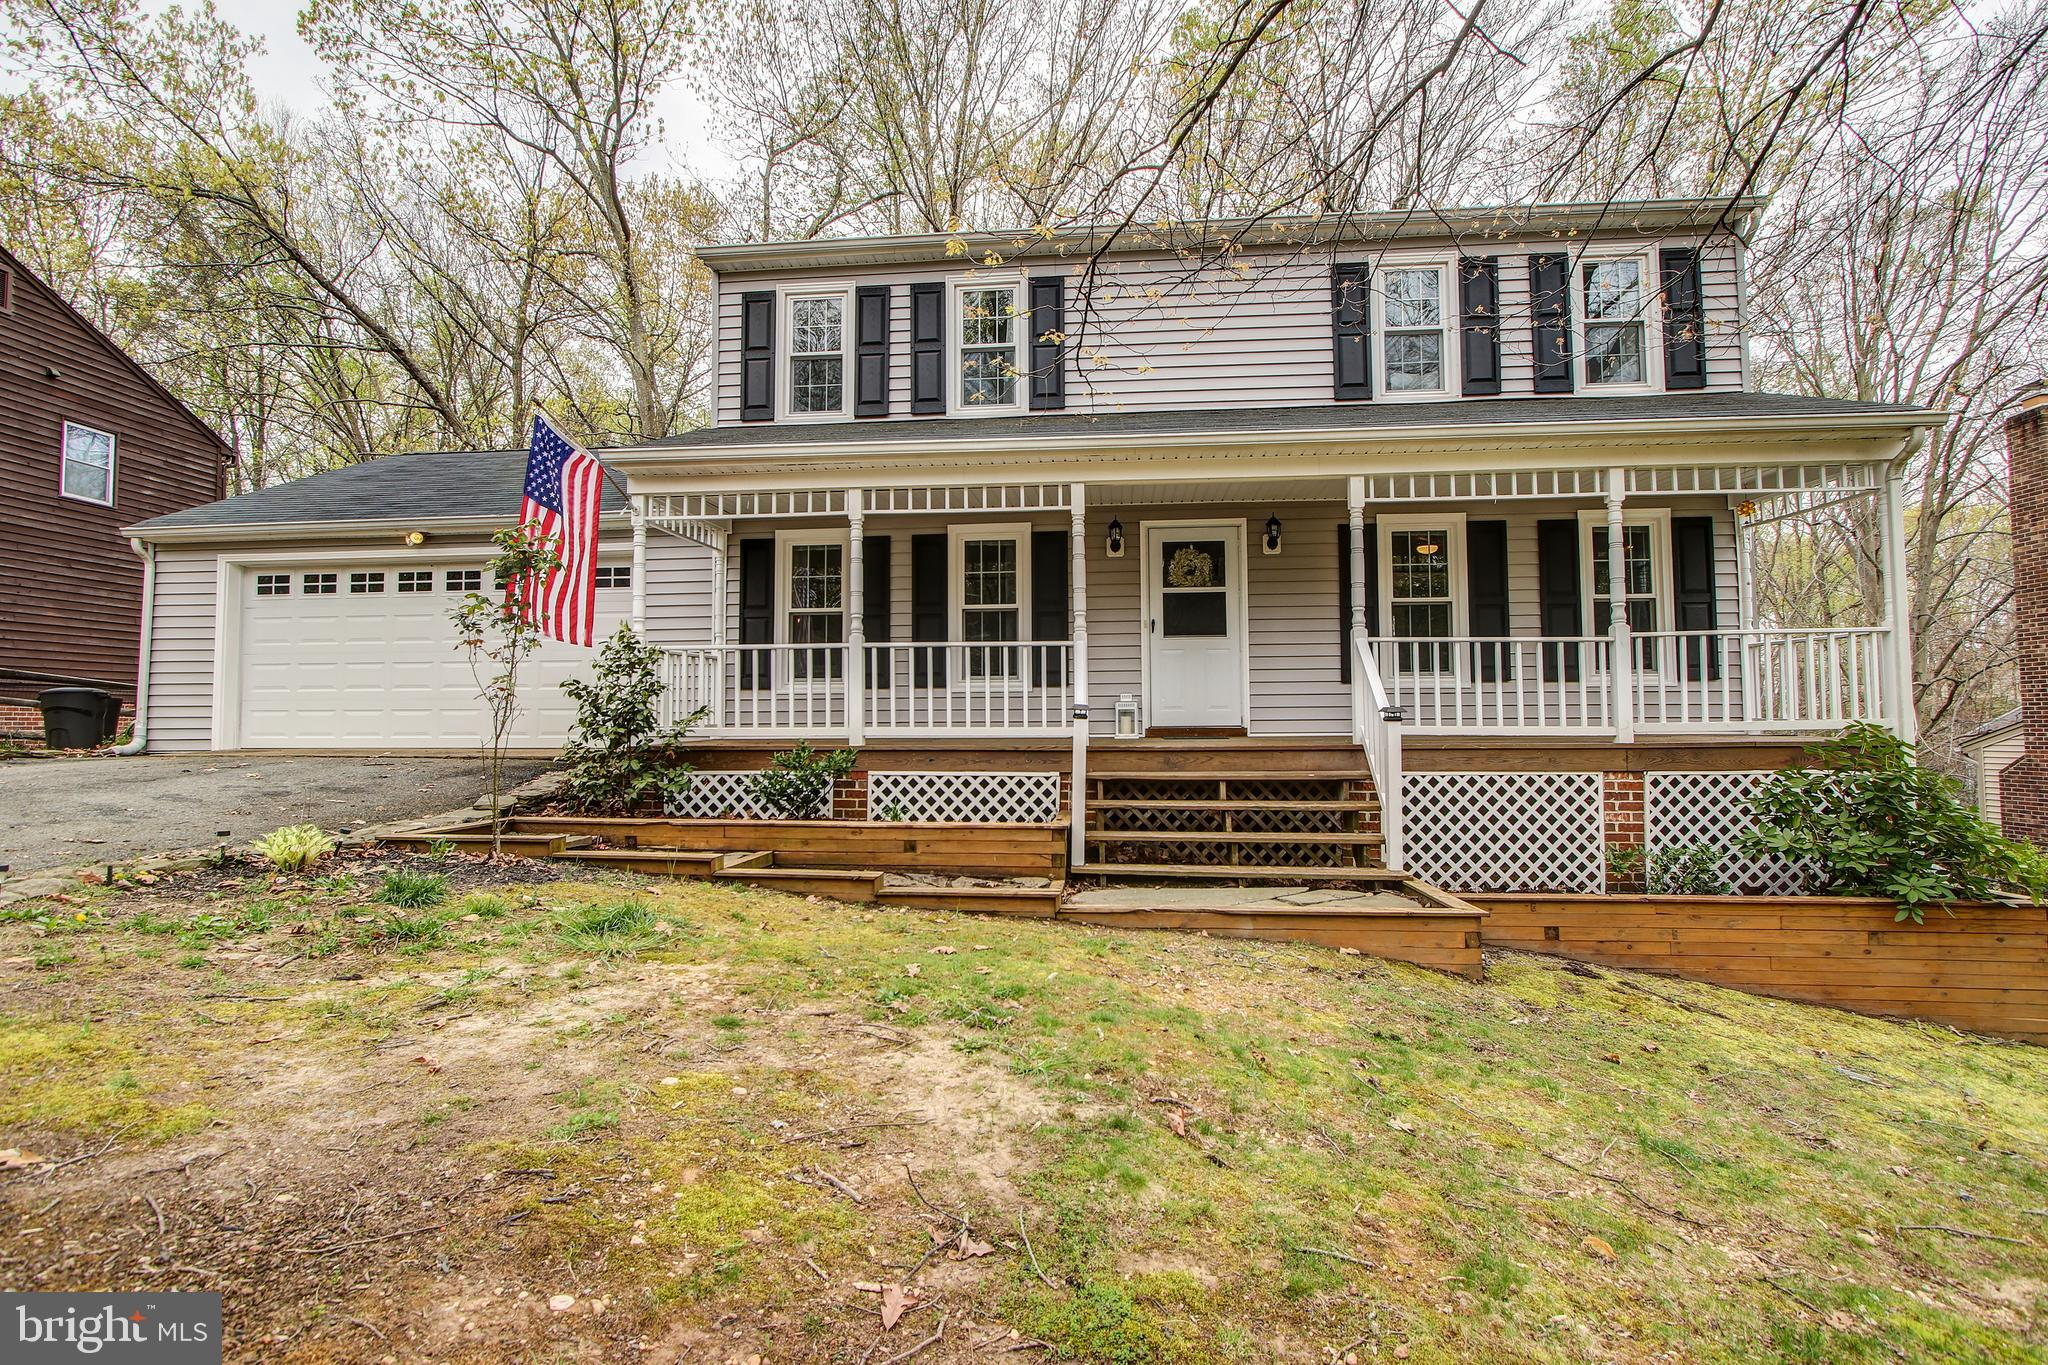 Don't miss out on this beautiful 3 bed, 3.5 bath colonial home with a charming front porch and 2 car